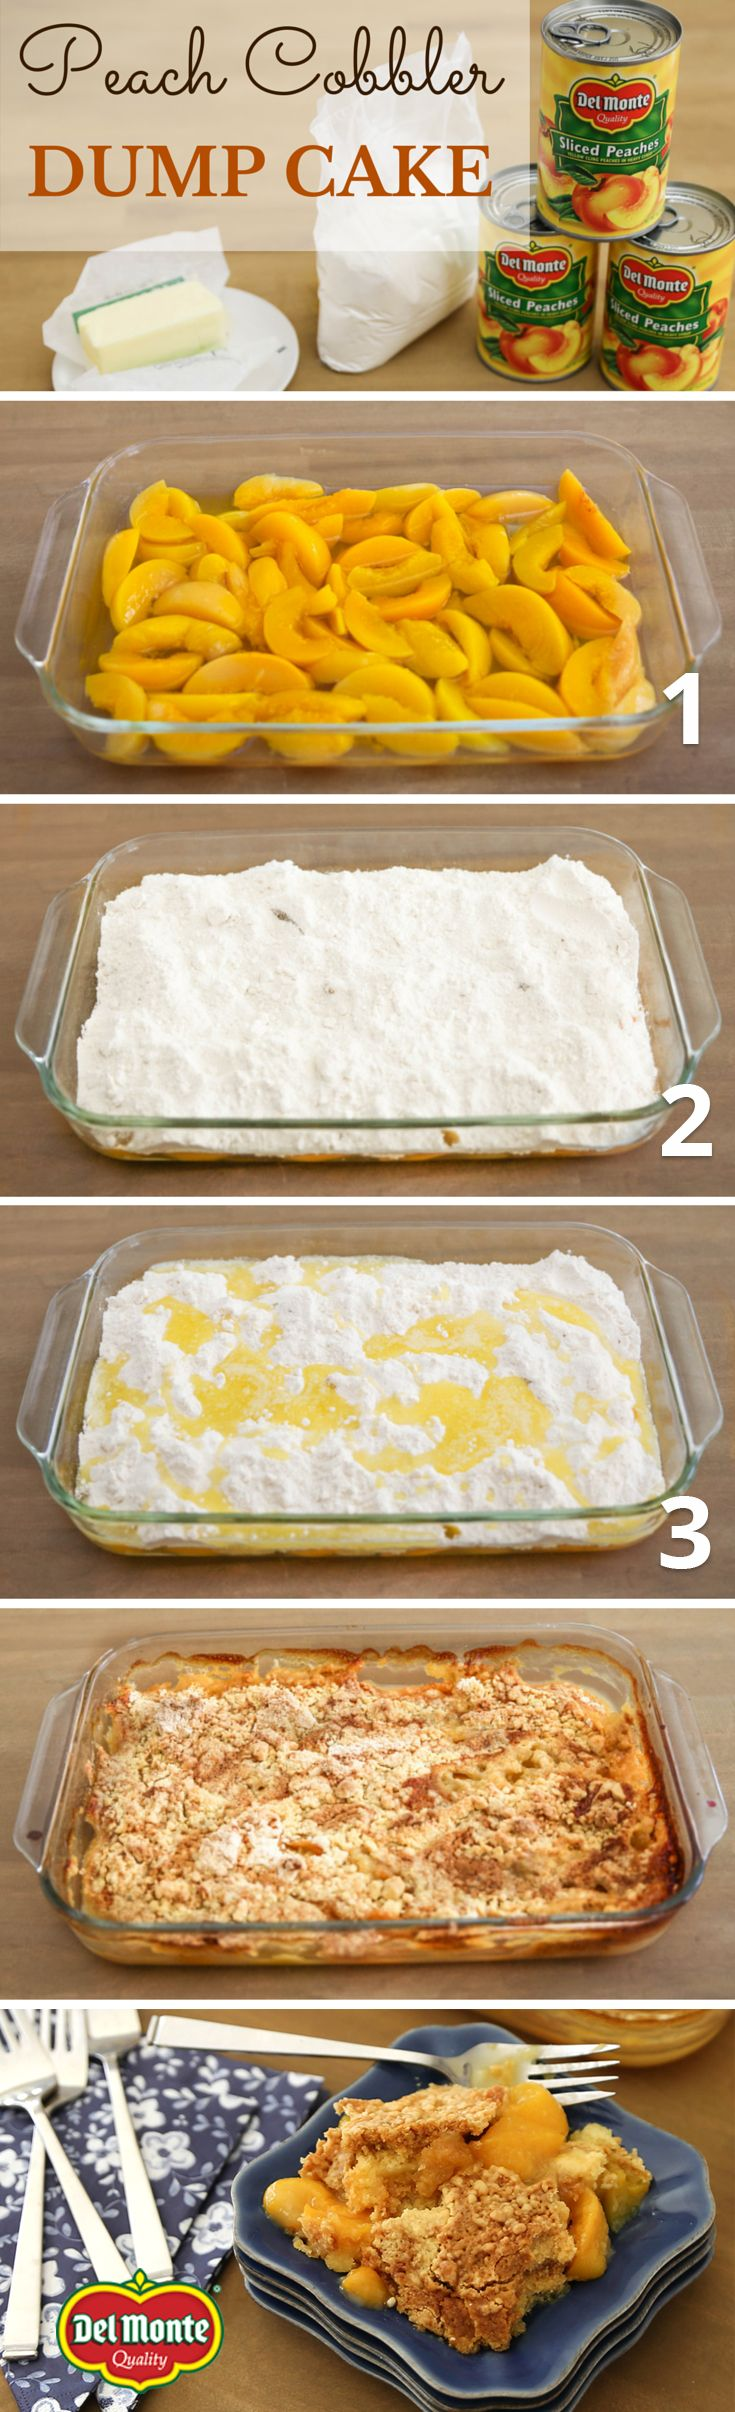 Peach Cobbler Dump Cake - The winner of the Del Monte Fan Favorite Dump Cake Poll! A super-simple sweet comfort food, made with 3 ingredients! No mixer, no eggs! Just layer fruit, dry cake mix and butter right in the baking dish, and a delicious dessert bakes up that's somewhere between a cobbler and a fruit crisp. Gonna make this for dessert tonight, with some nutmeg sprinkled on top.